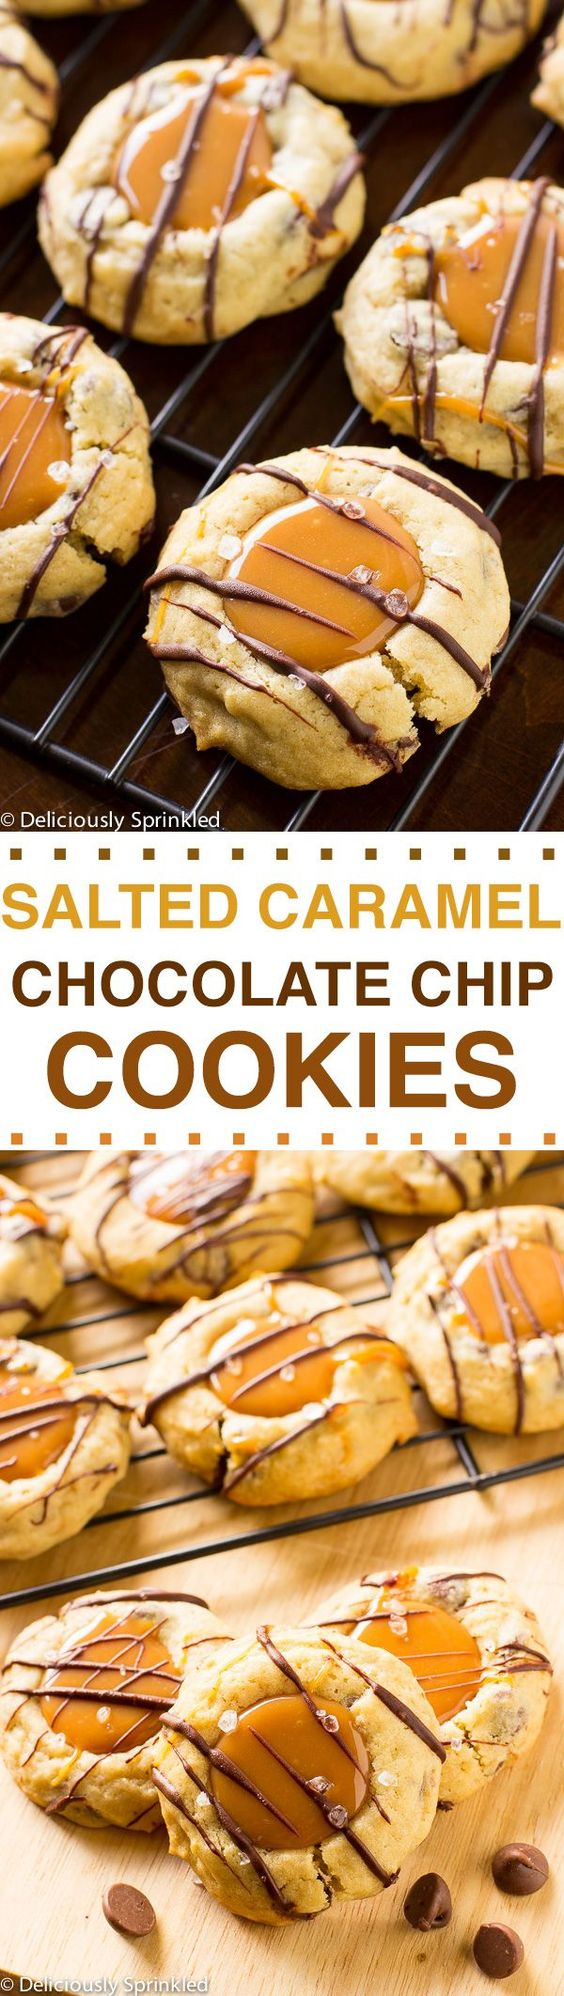 The BEST Salted Caramel Chocolate Chip Cookies. Get the recipe here!